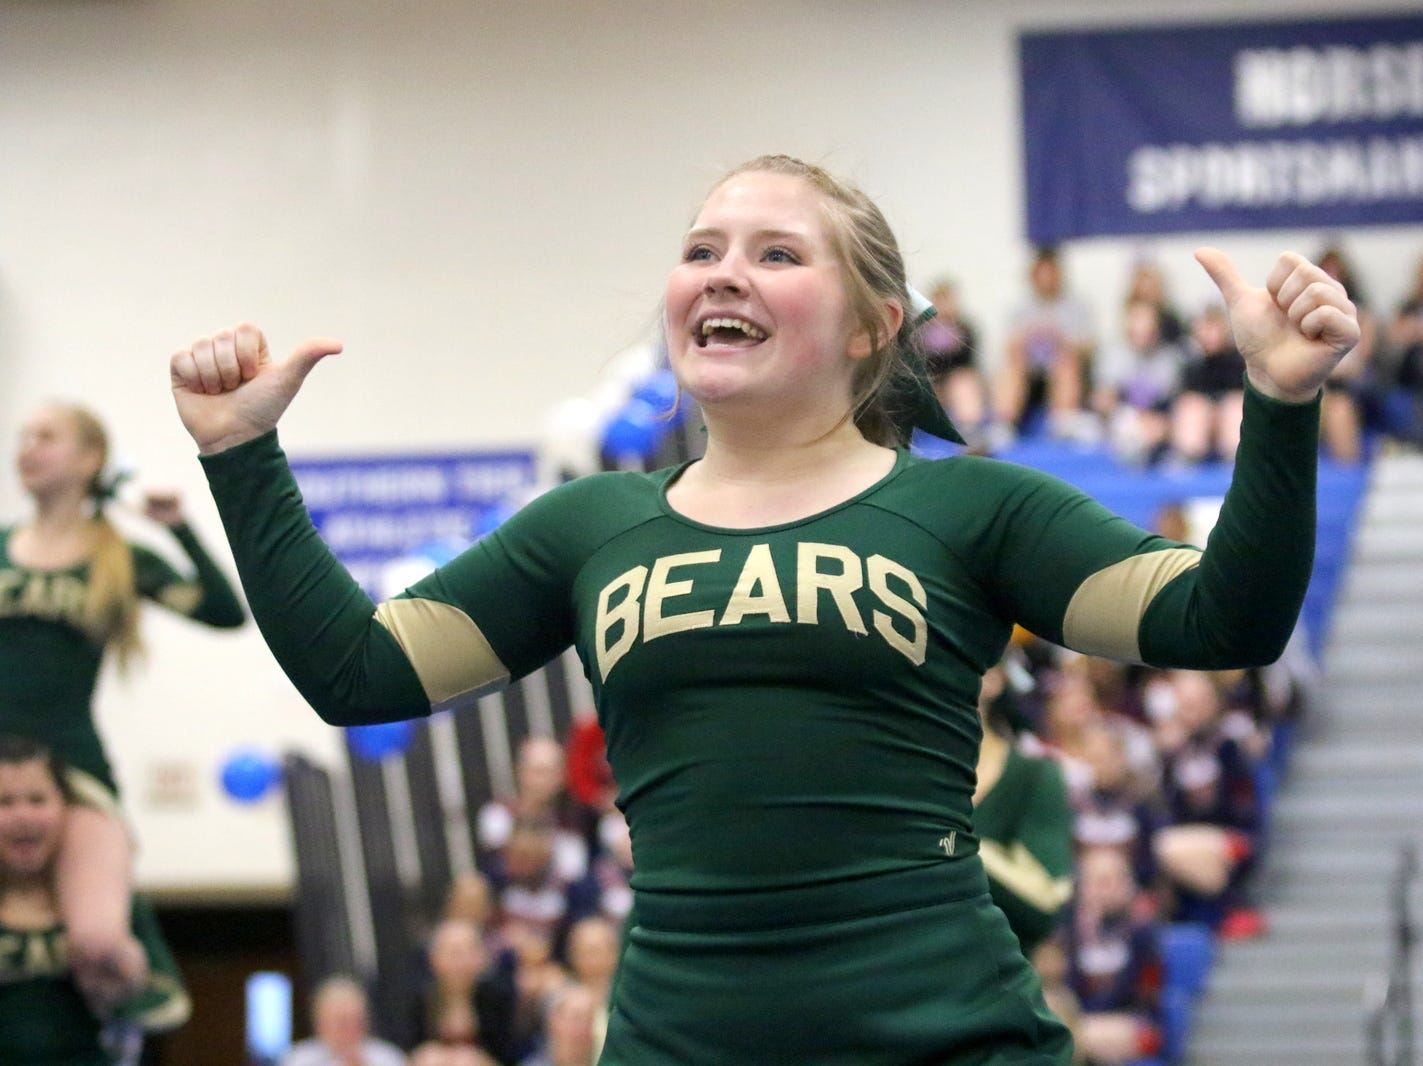 Vestal varsity cheerleaders compete at the STAC Winter Cheer Championships on Feb. 16, 2019 at Horseheads Middle School.